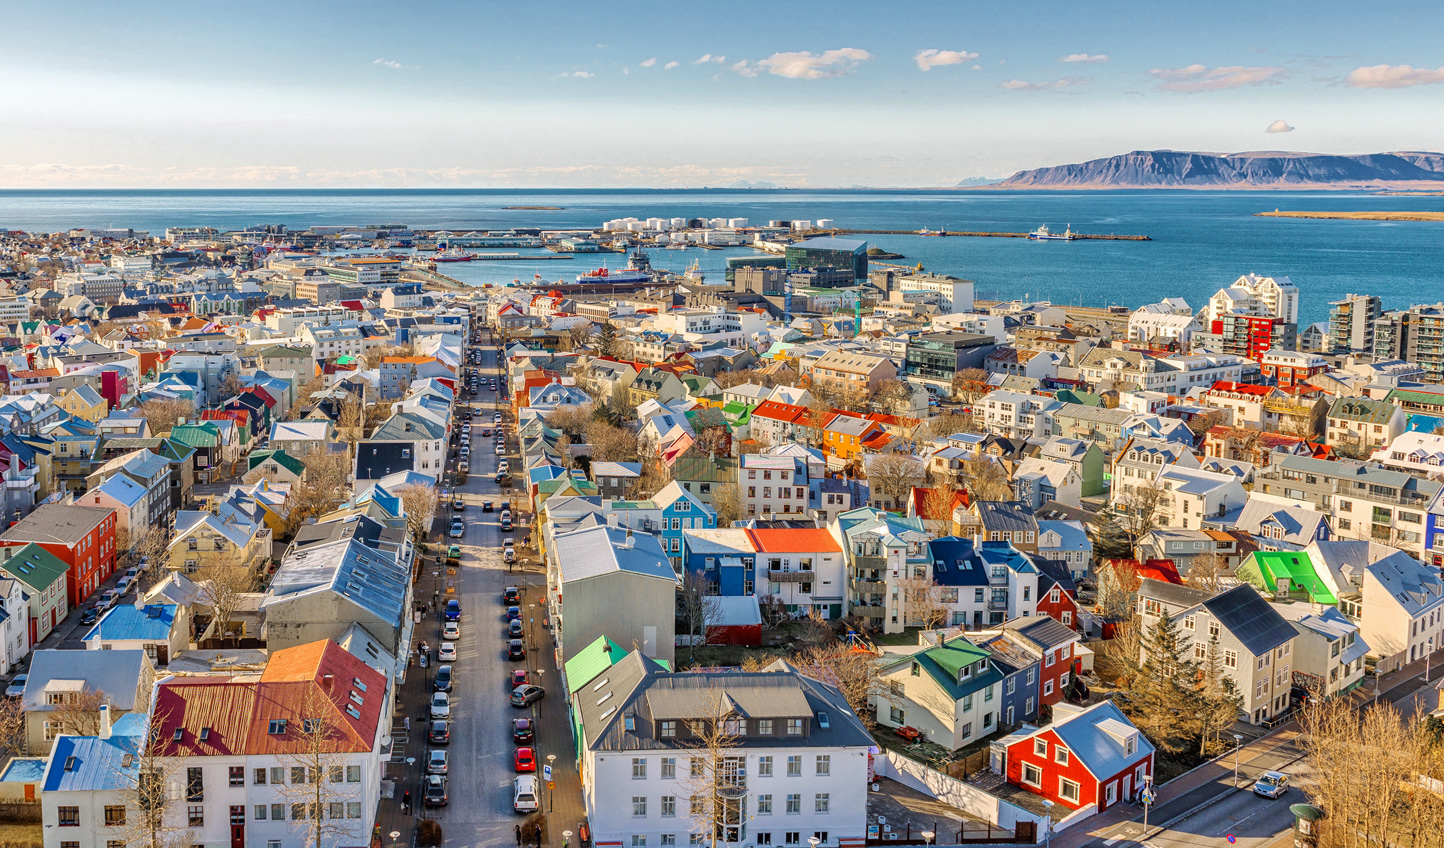 Stroll through the colourful streets of Reykjavik